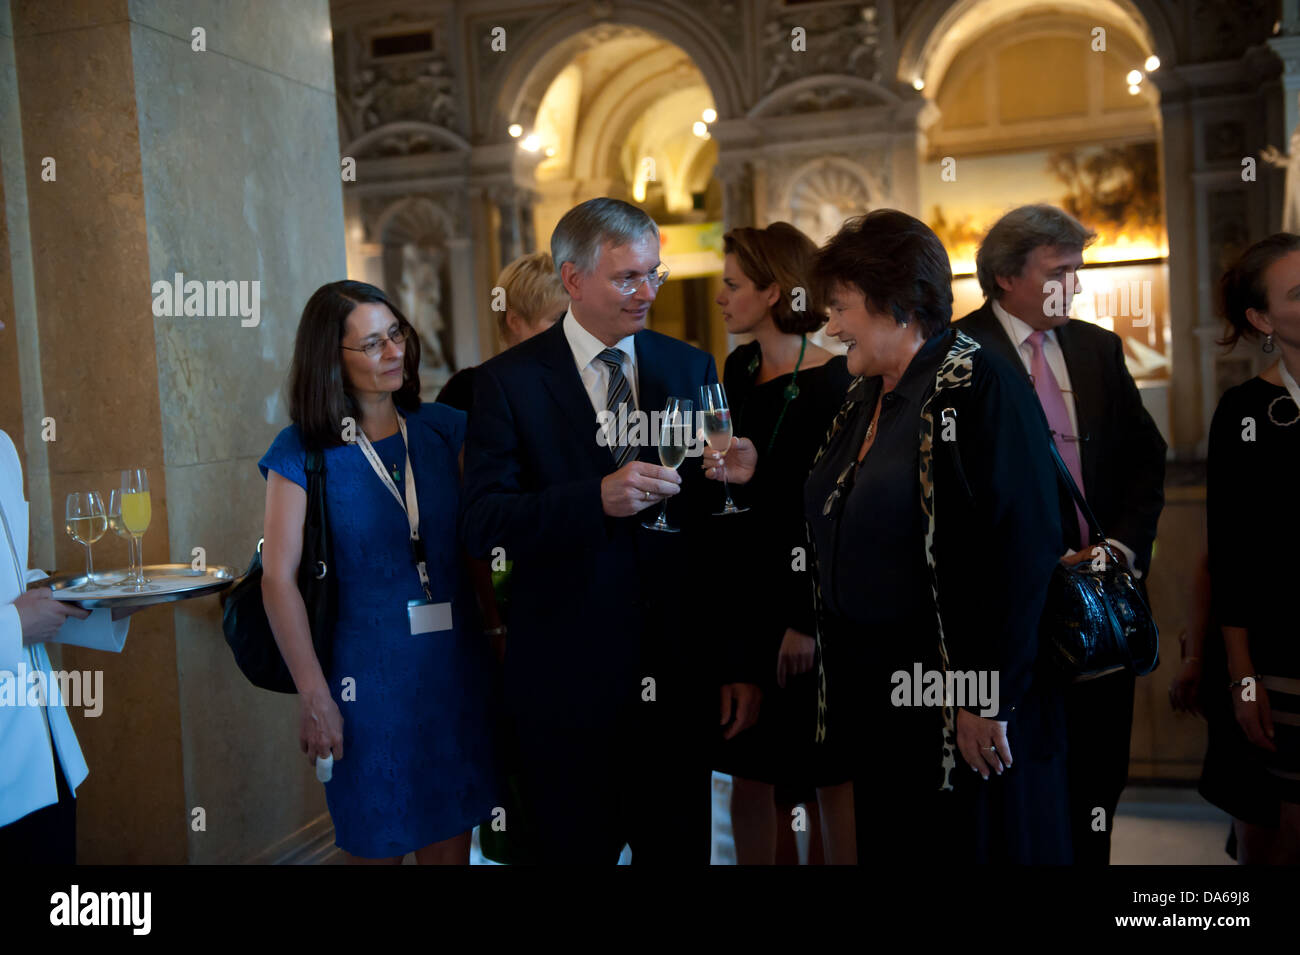 Reception by the Federal Minister of Heath of the Republic of Austria Mr. Alios Stöger - Stock Image